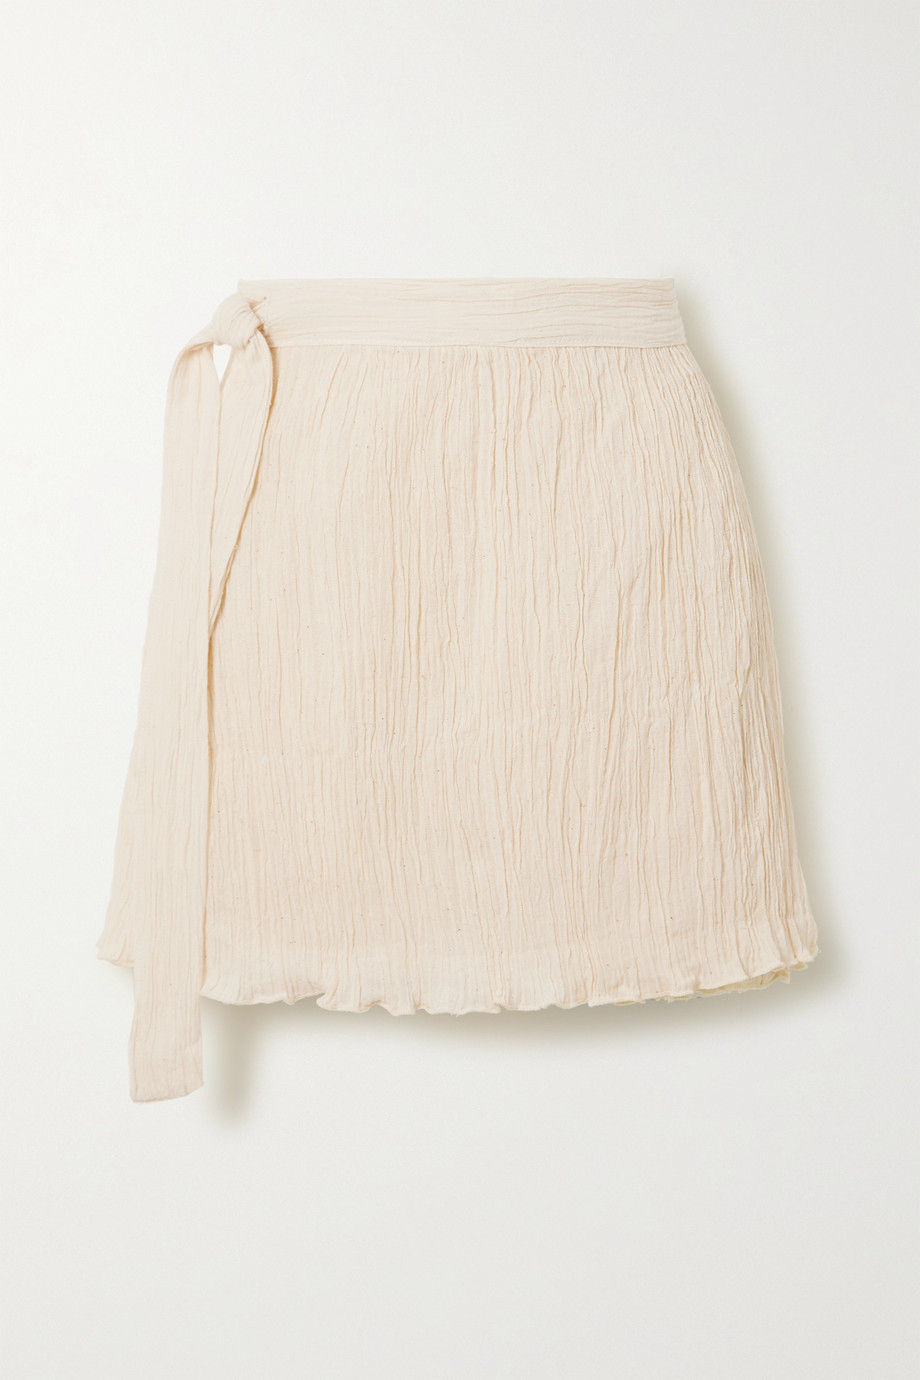 Savannah Morrow The Label The Hayi crinkled organic cotton-gauze wrap mini skirt